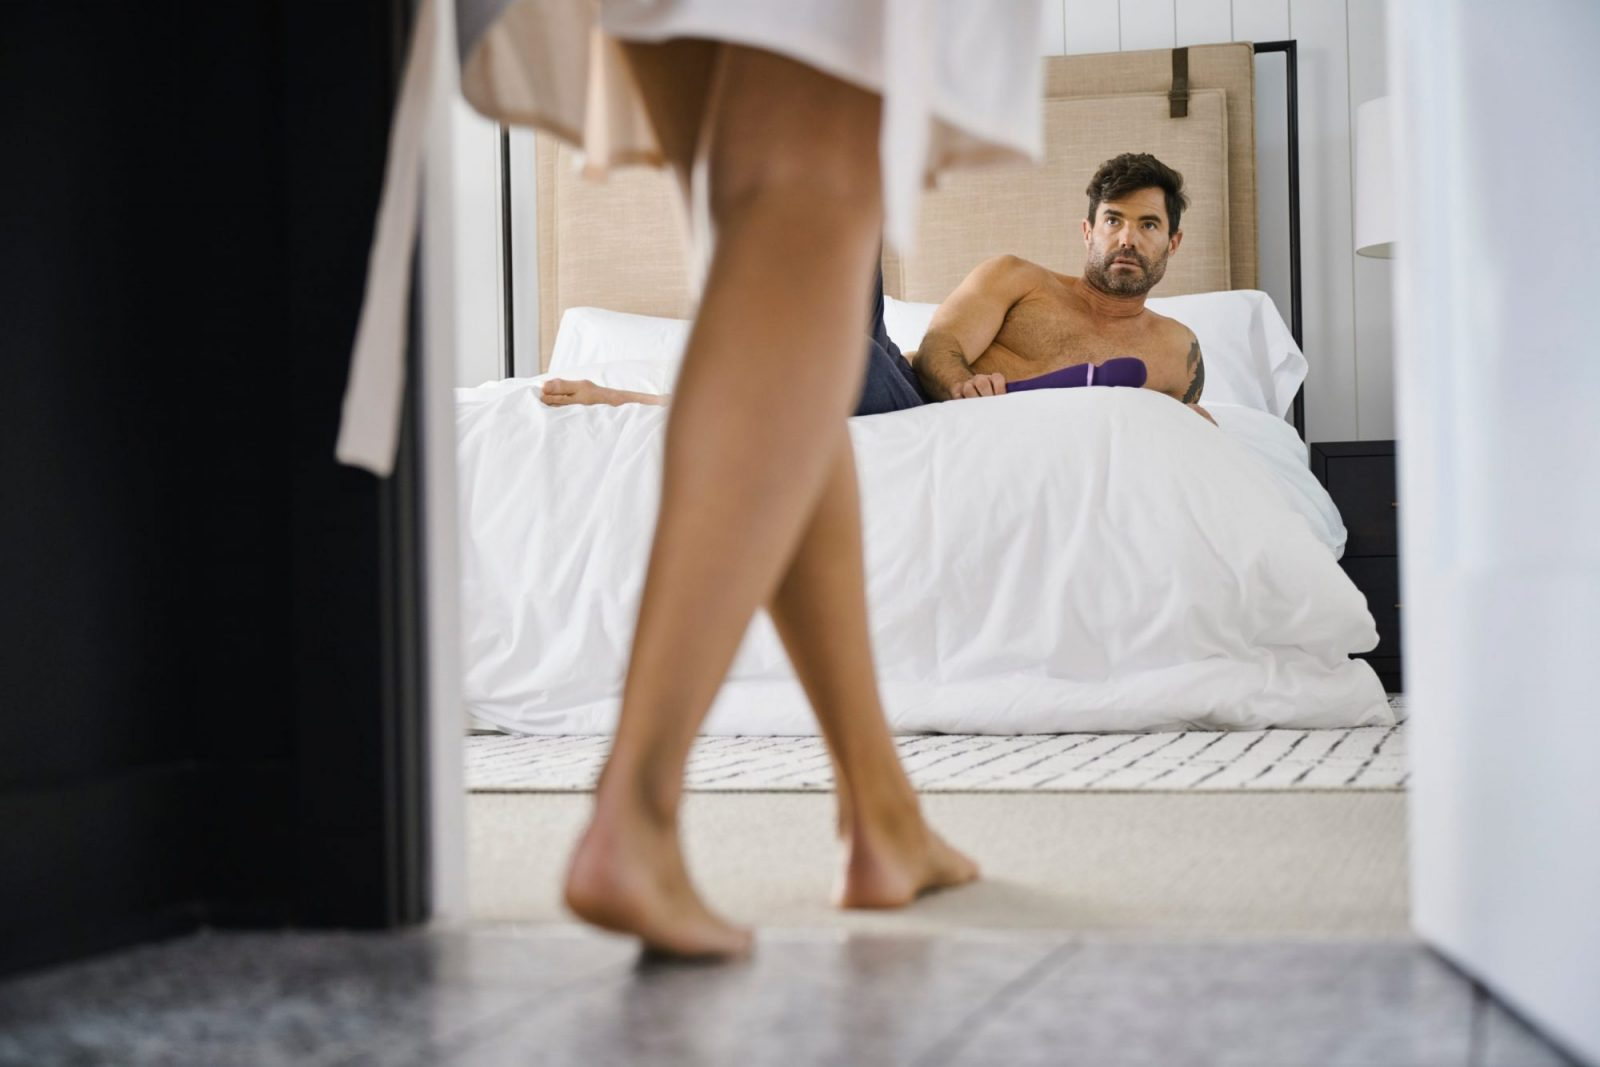 Ways to please a man in bed